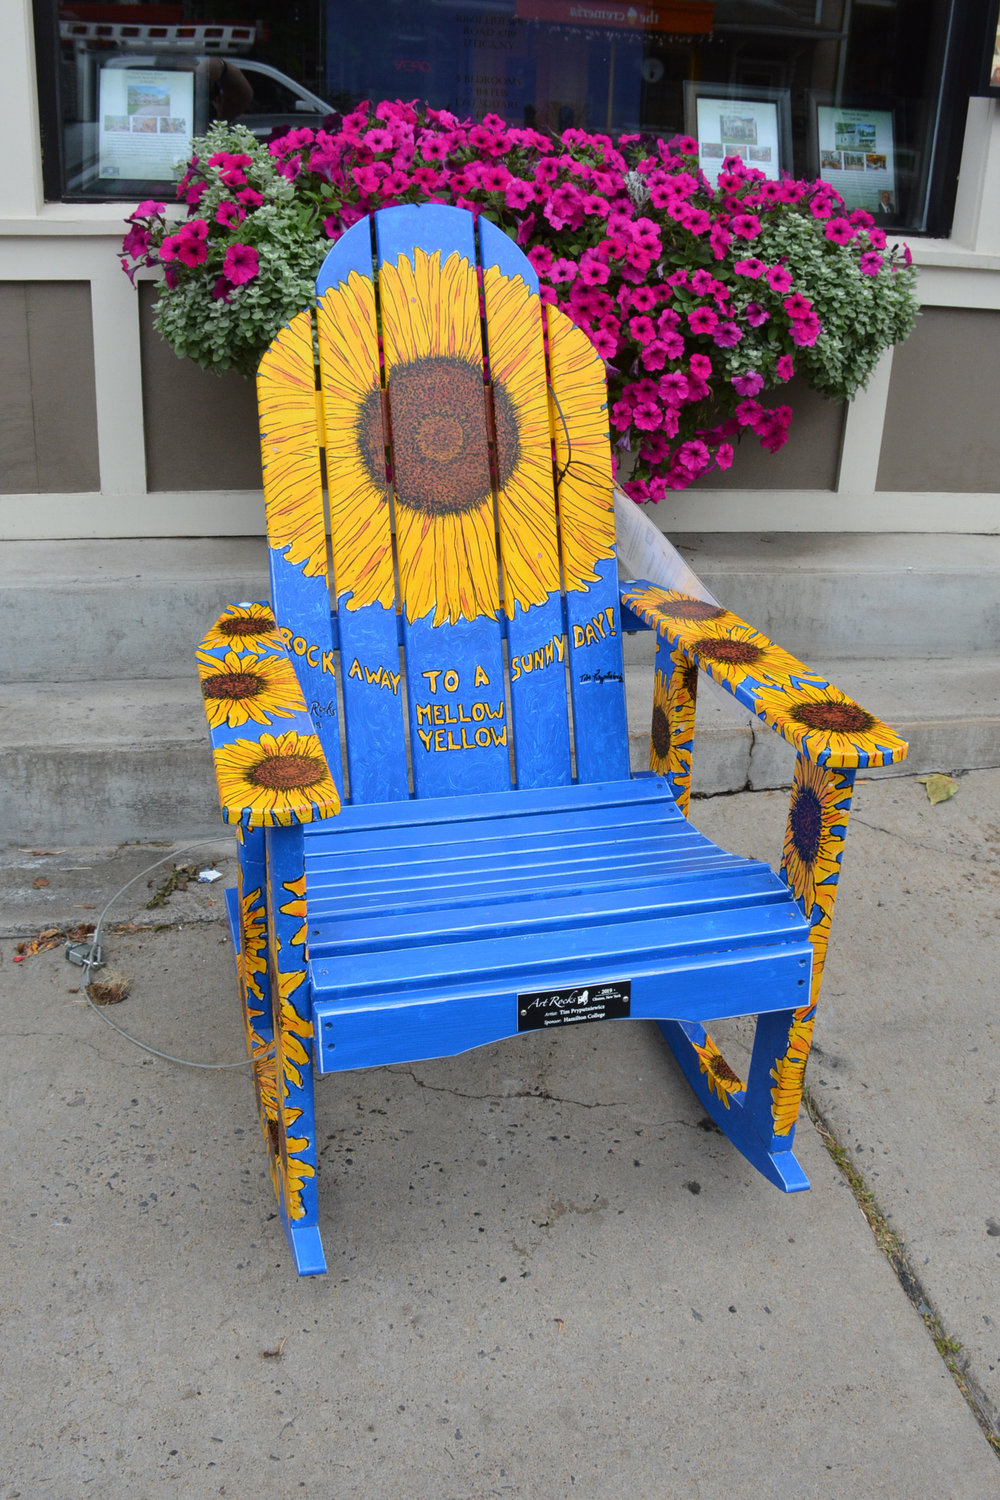 LET THE SUN SHINE — ART ROCKS! — This is one of the many chairs and benches painted by local artists that will be auctioned off at 4:30 p.m. Saturday, Aug. 24 during the annual Clinton Art & Music Festival. This chair was painted by Tim Pryputniewicz.